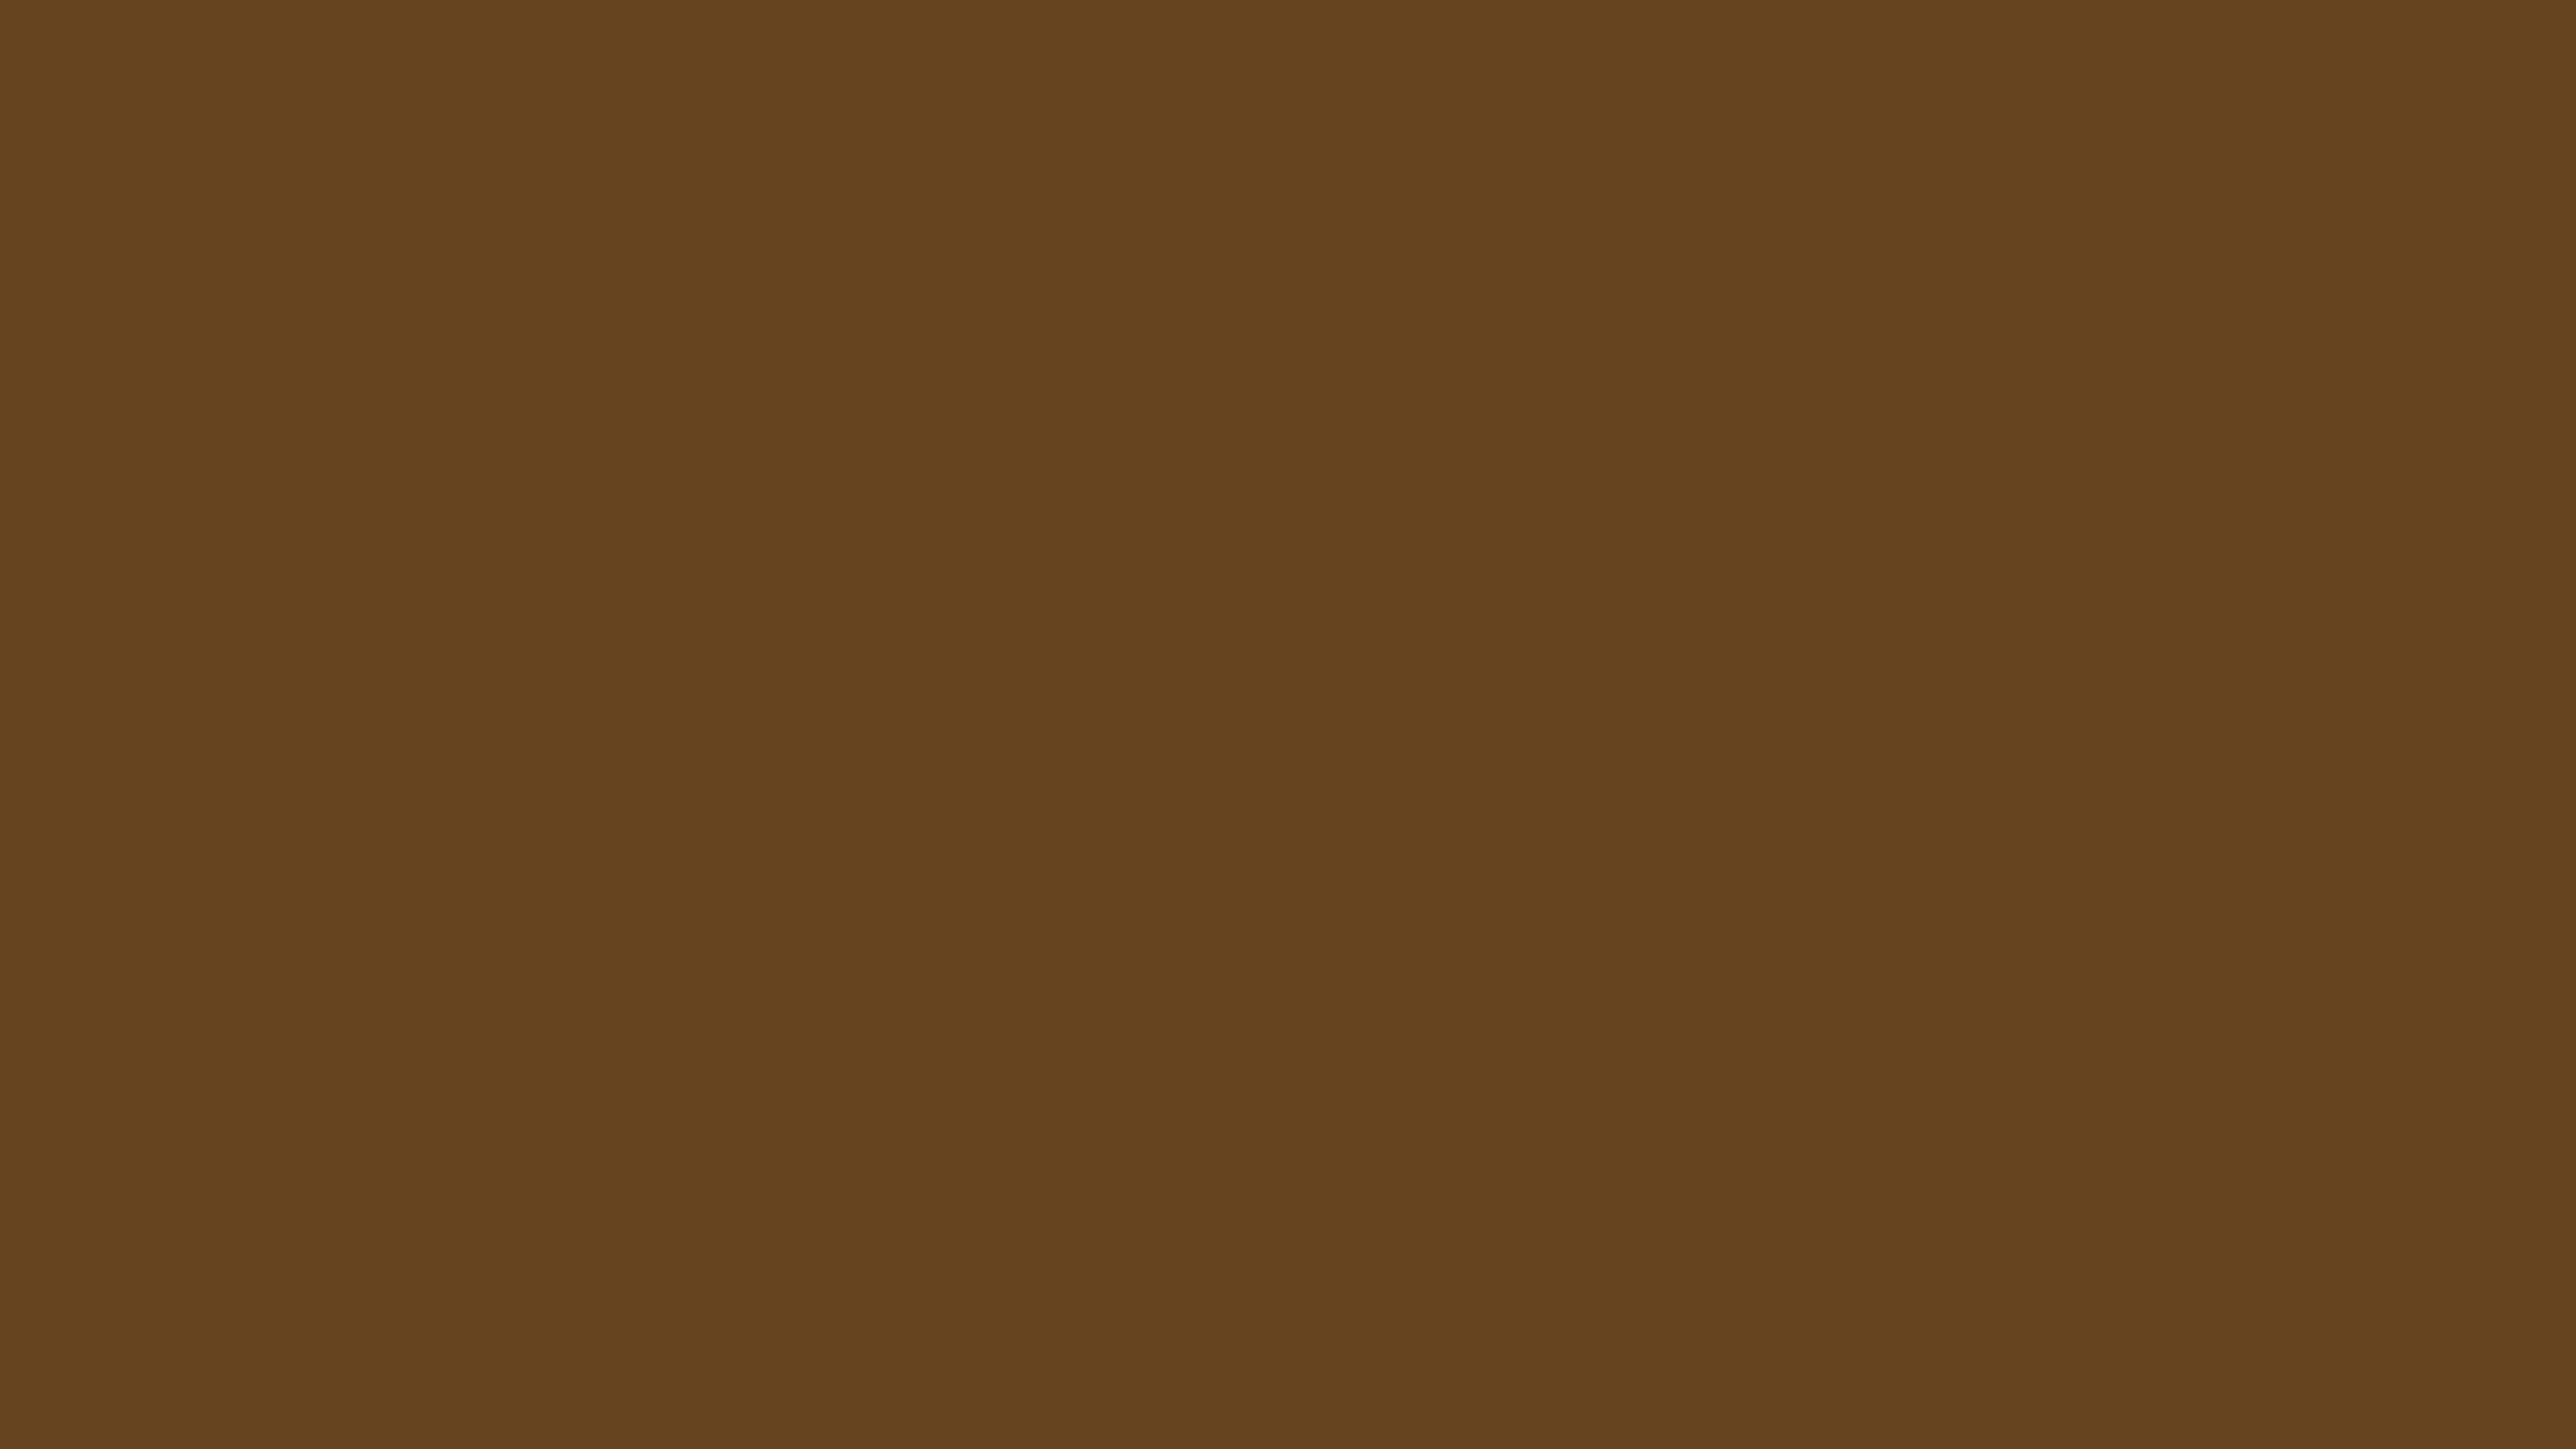 5120x2880 Otter Brown Solid Color Background